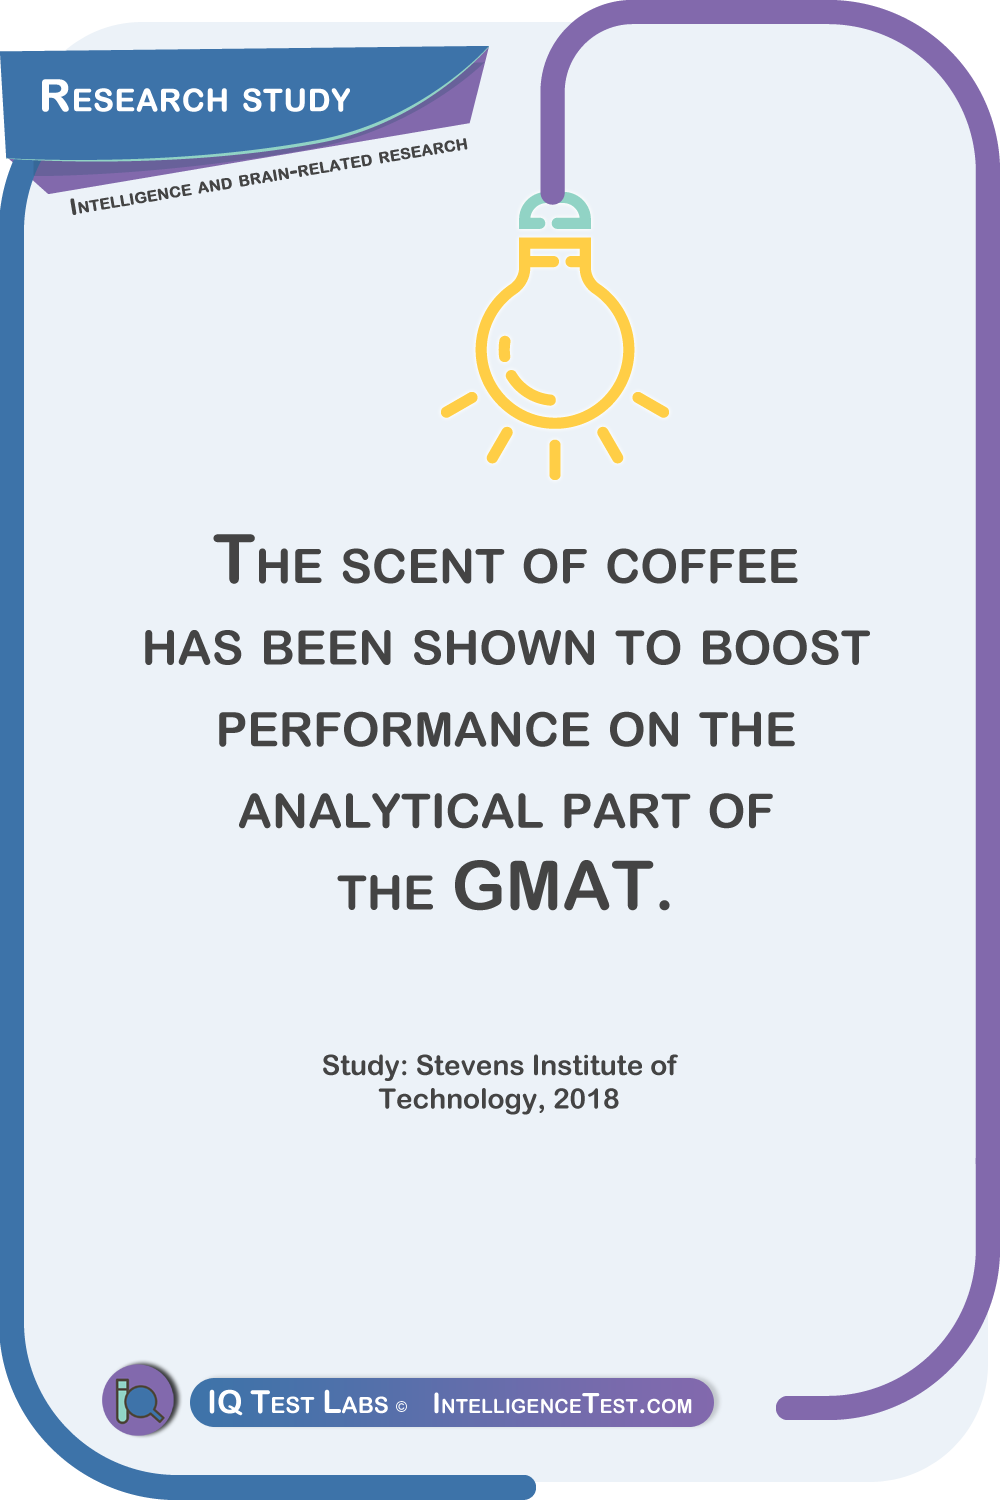 The scent of coffee has been show to boost performance on the analytical part of the GMAT, or the Graduate Management Aptitude Test. Study: Stevens Institute of Technology, 2018.